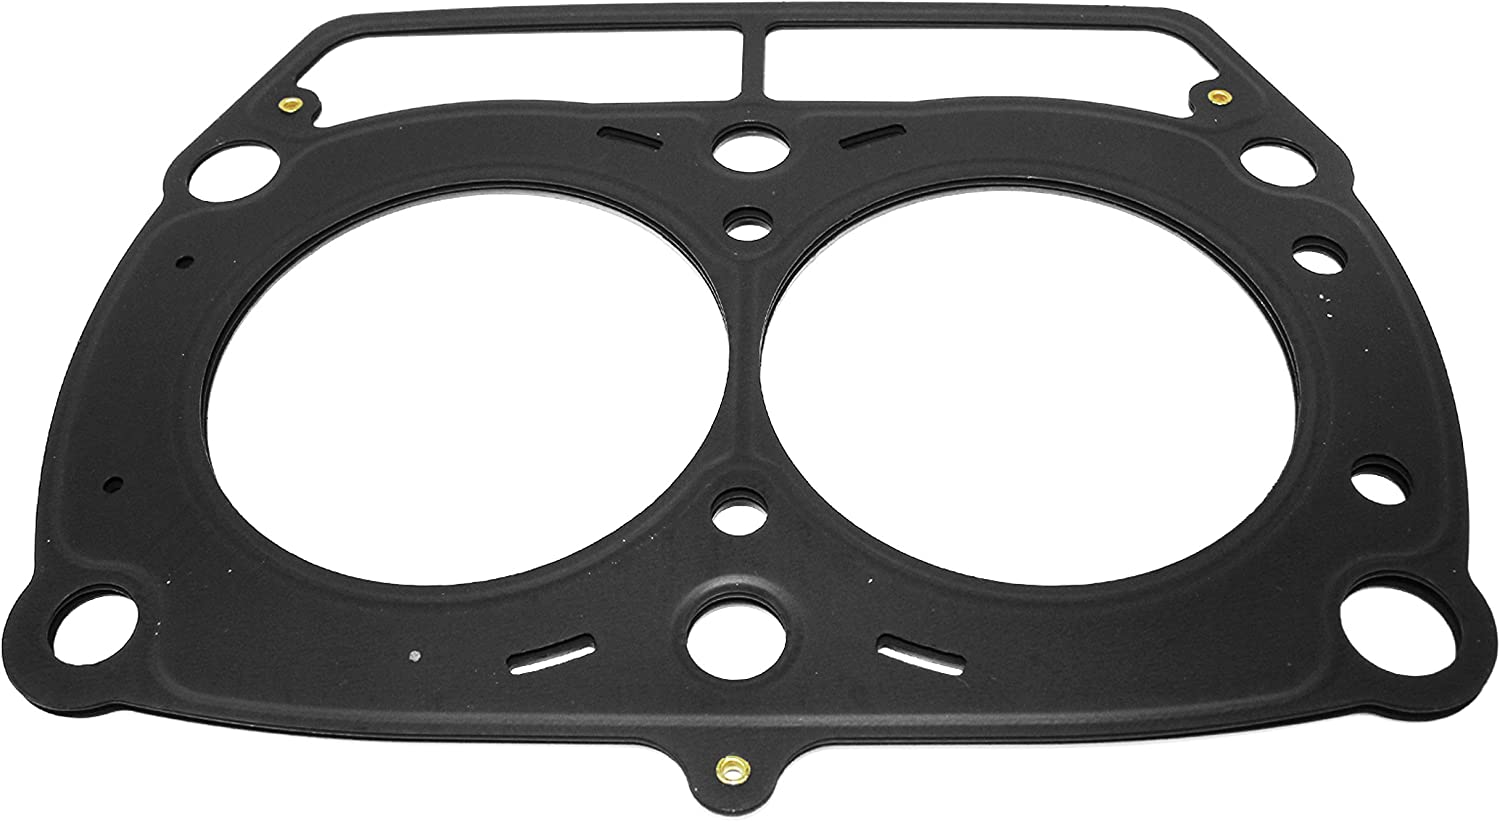 Caltric Cylinder Head Gasket compatible with Polaris 5247359